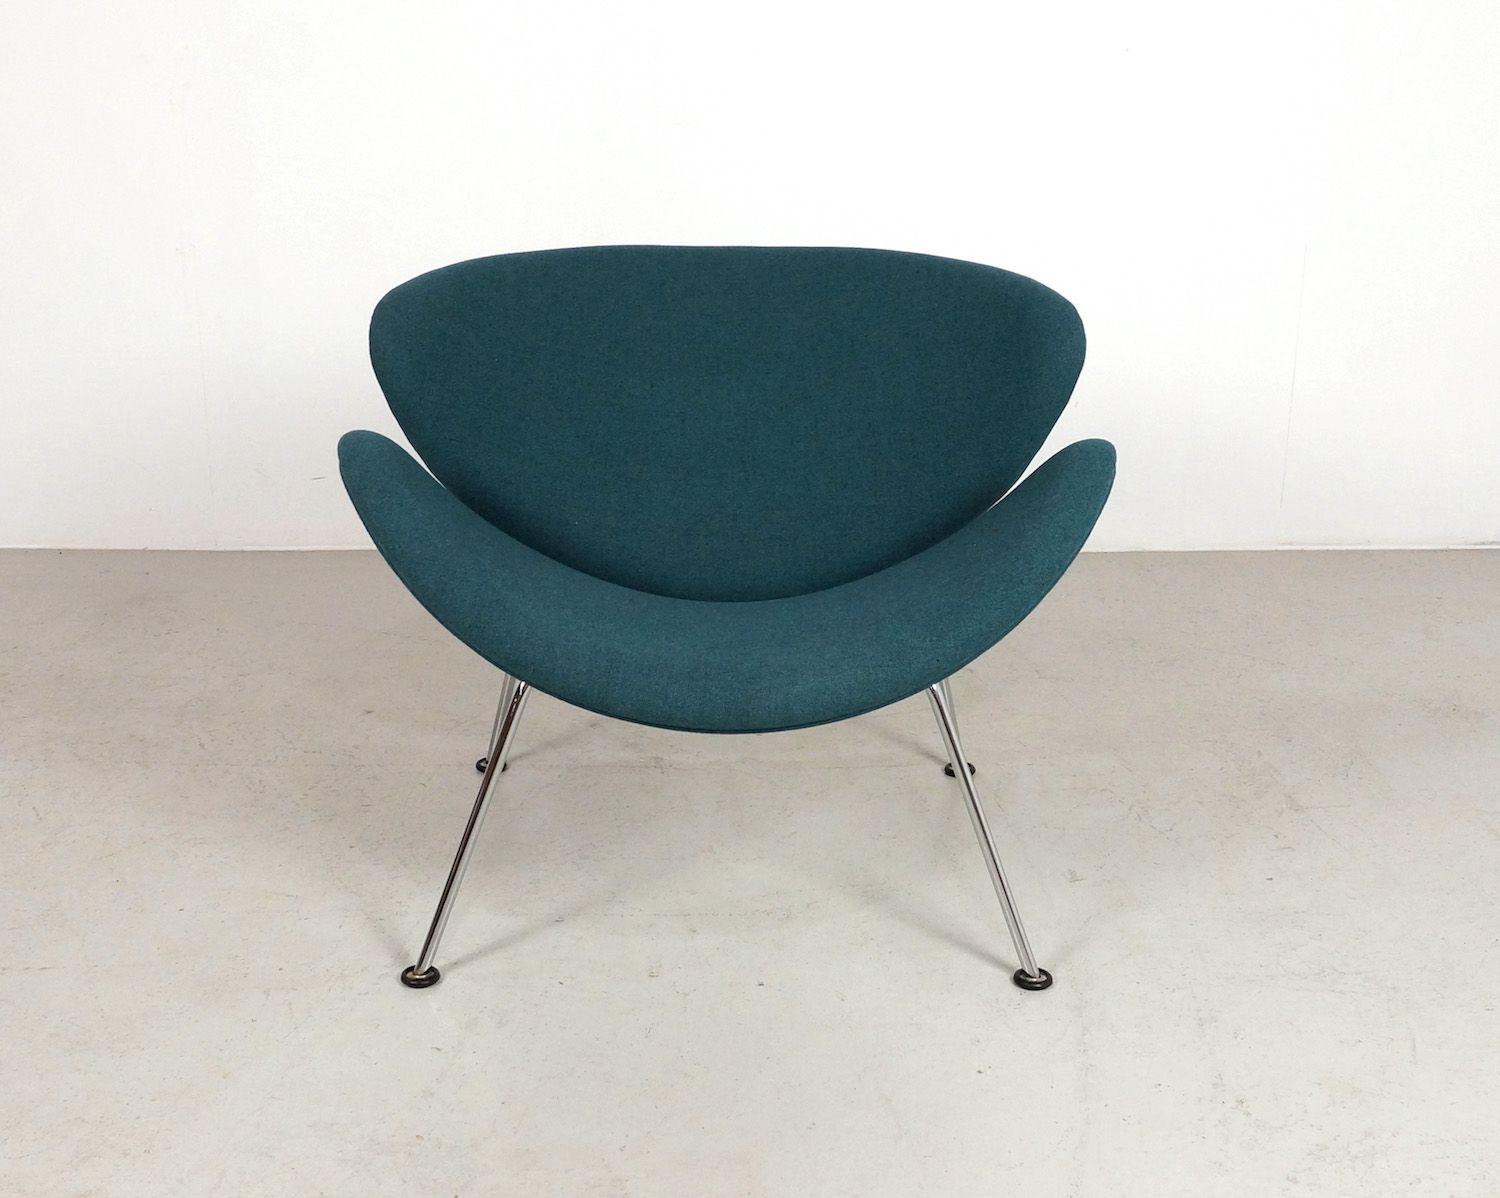 Vintage teal orange slice chair by pierre paulin for for Teal chairs for sale